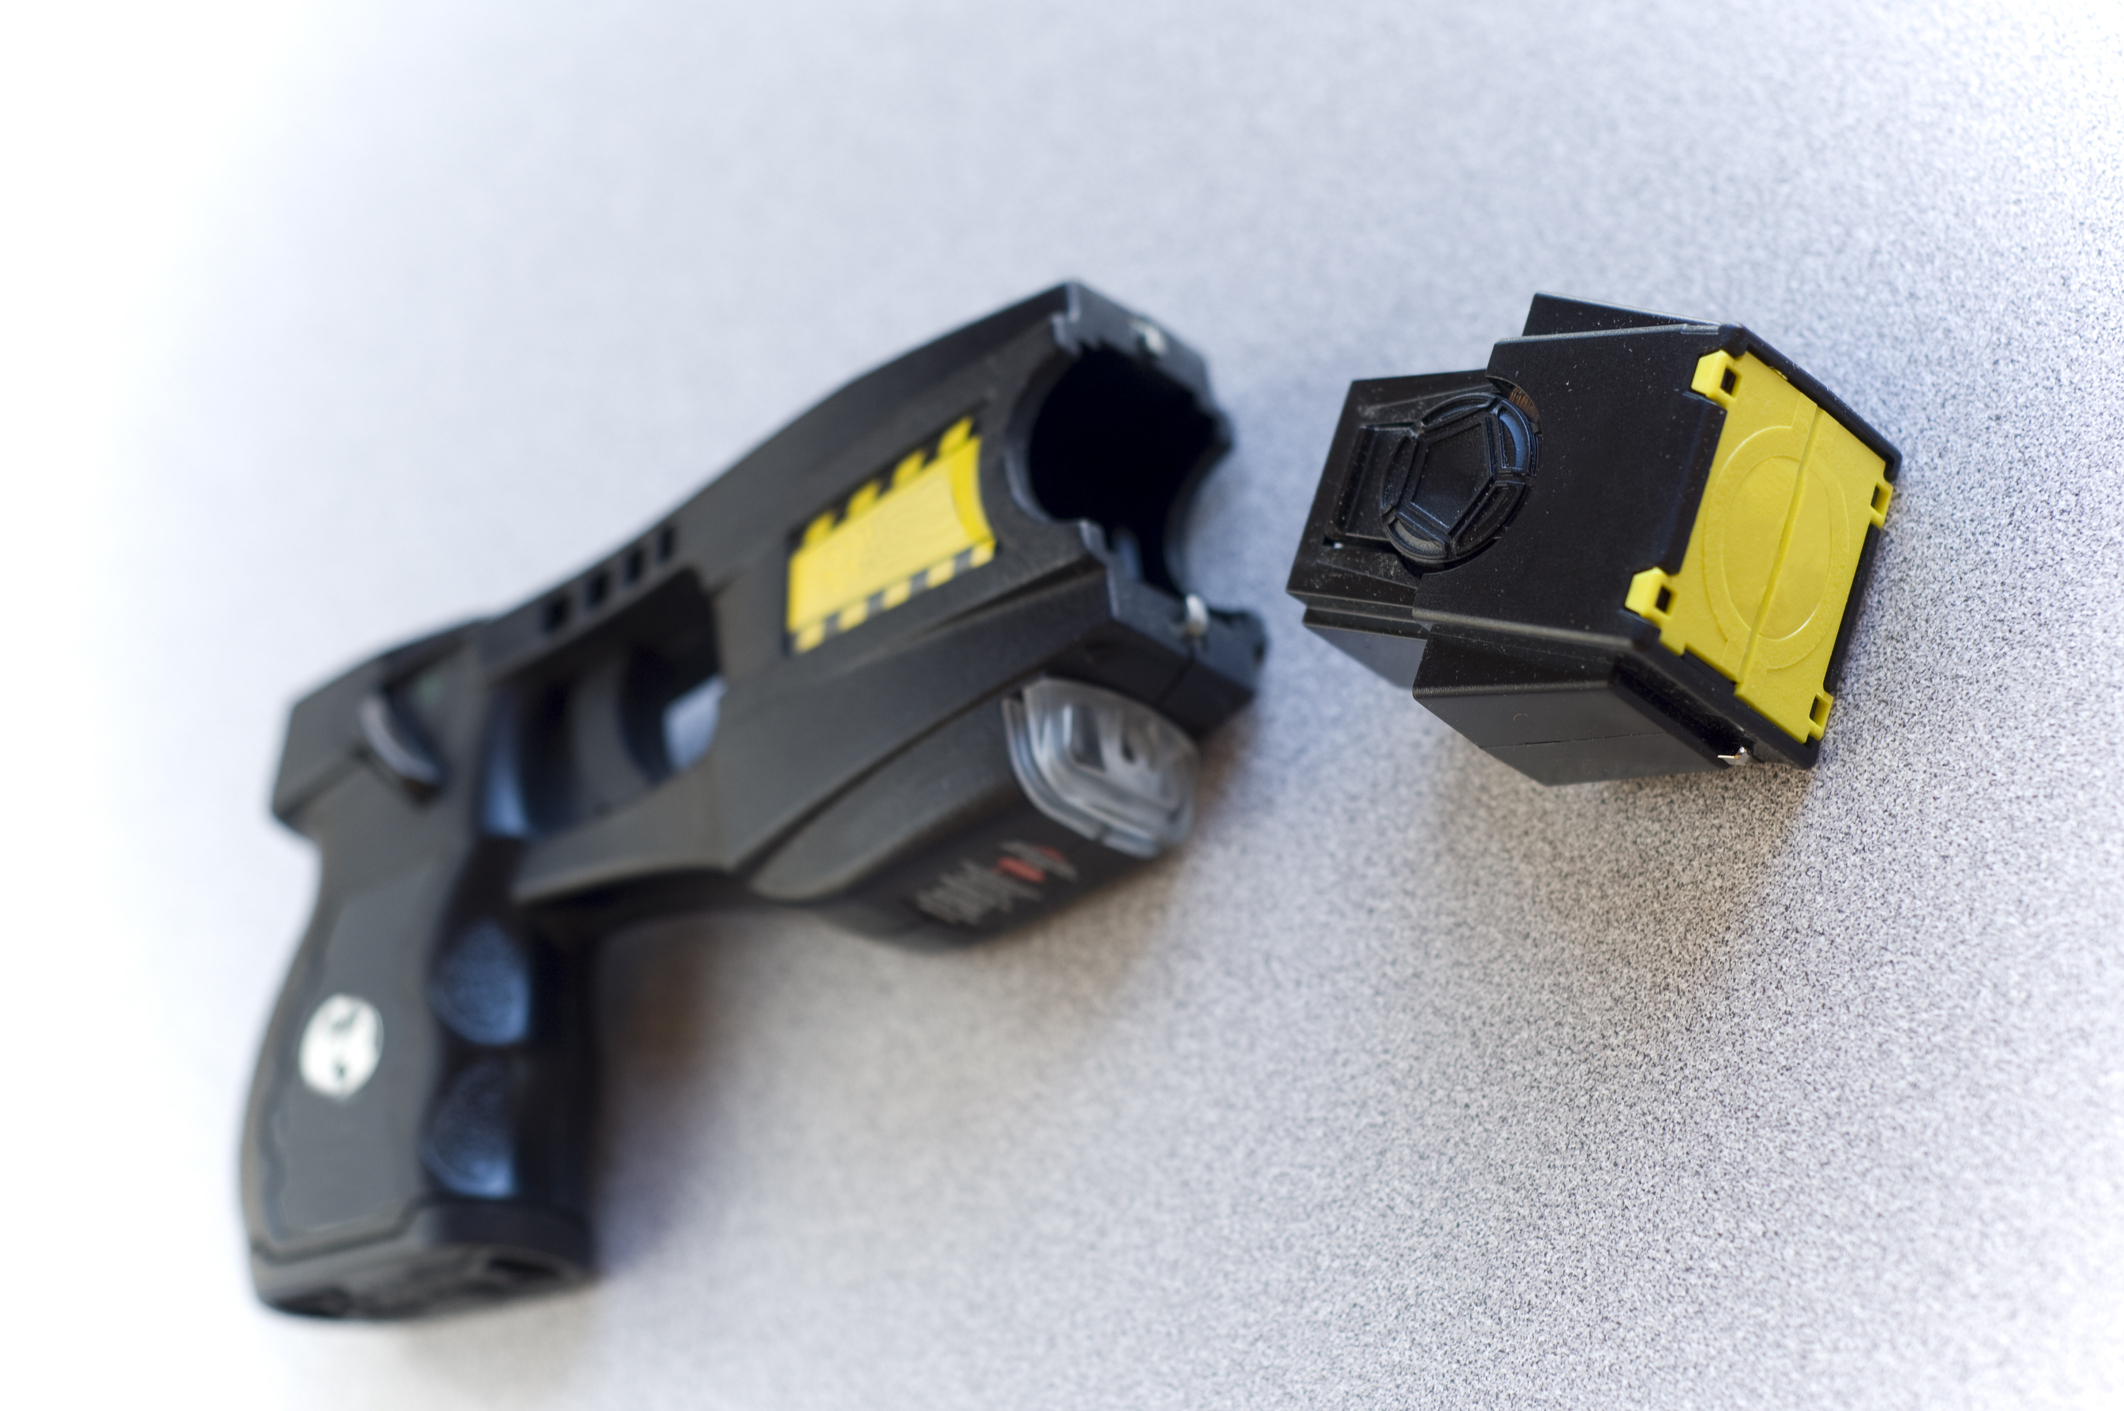 Westlake Legal Group iStock-157427831 2 Oklahoma officers charged with murder of man allegedly tased more than 50 times in 2019 Nick Givas fox-news/us/us-regions/southwest/oklahoma fox-news/us/crime/police-and-law-enforcement fox-news/us/crime fox news fnc/us fnc article 98691ea0-63f3-50b6-800e-a24220943697